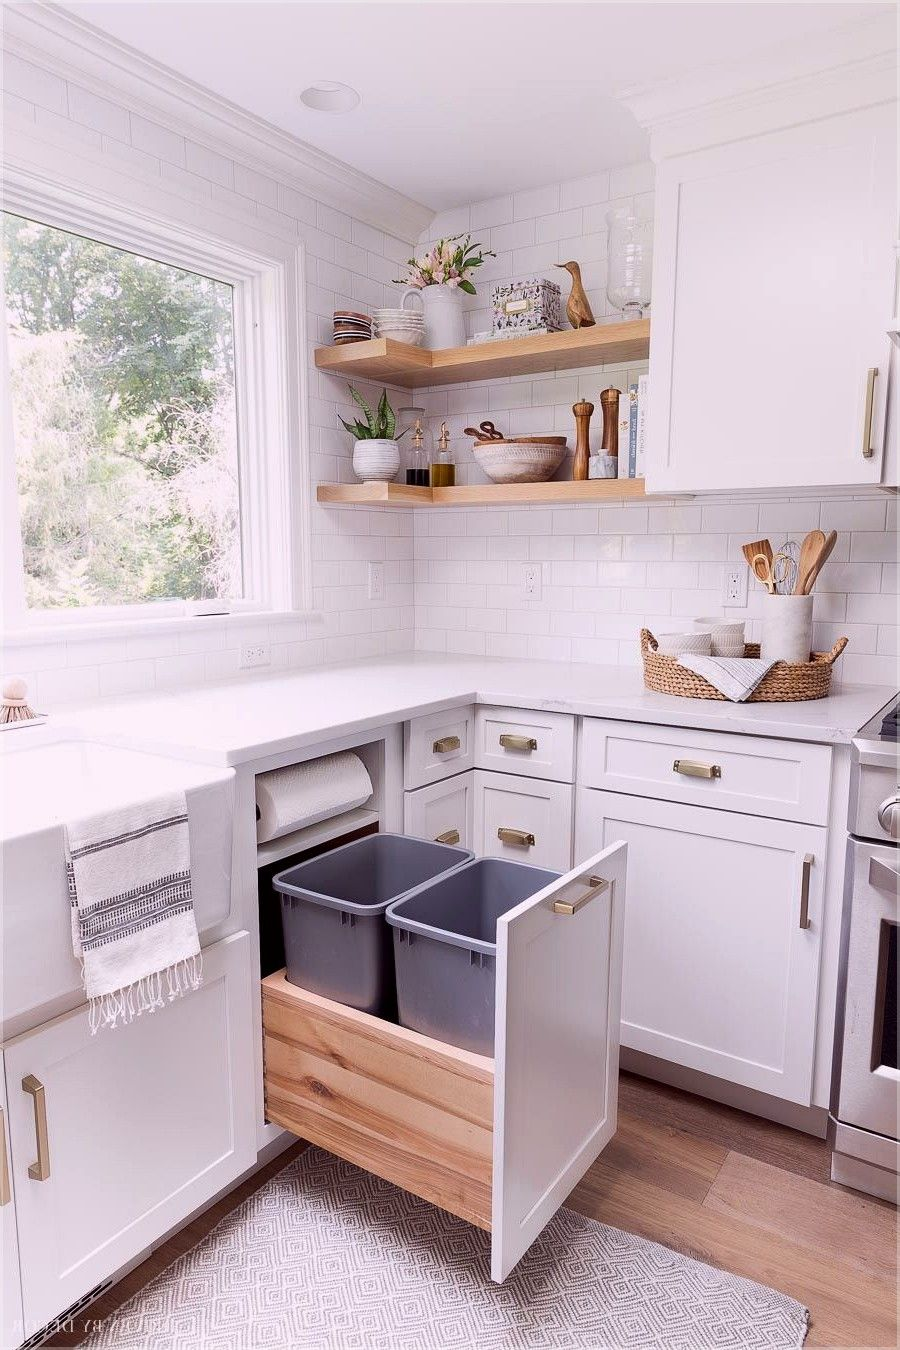 26 Best Kitchen Decor Design Or Remodel Ideas That Will Inspire You Homelovers Kitchen Remodel Cost Kitchen Remodel Small Kitchen Layout